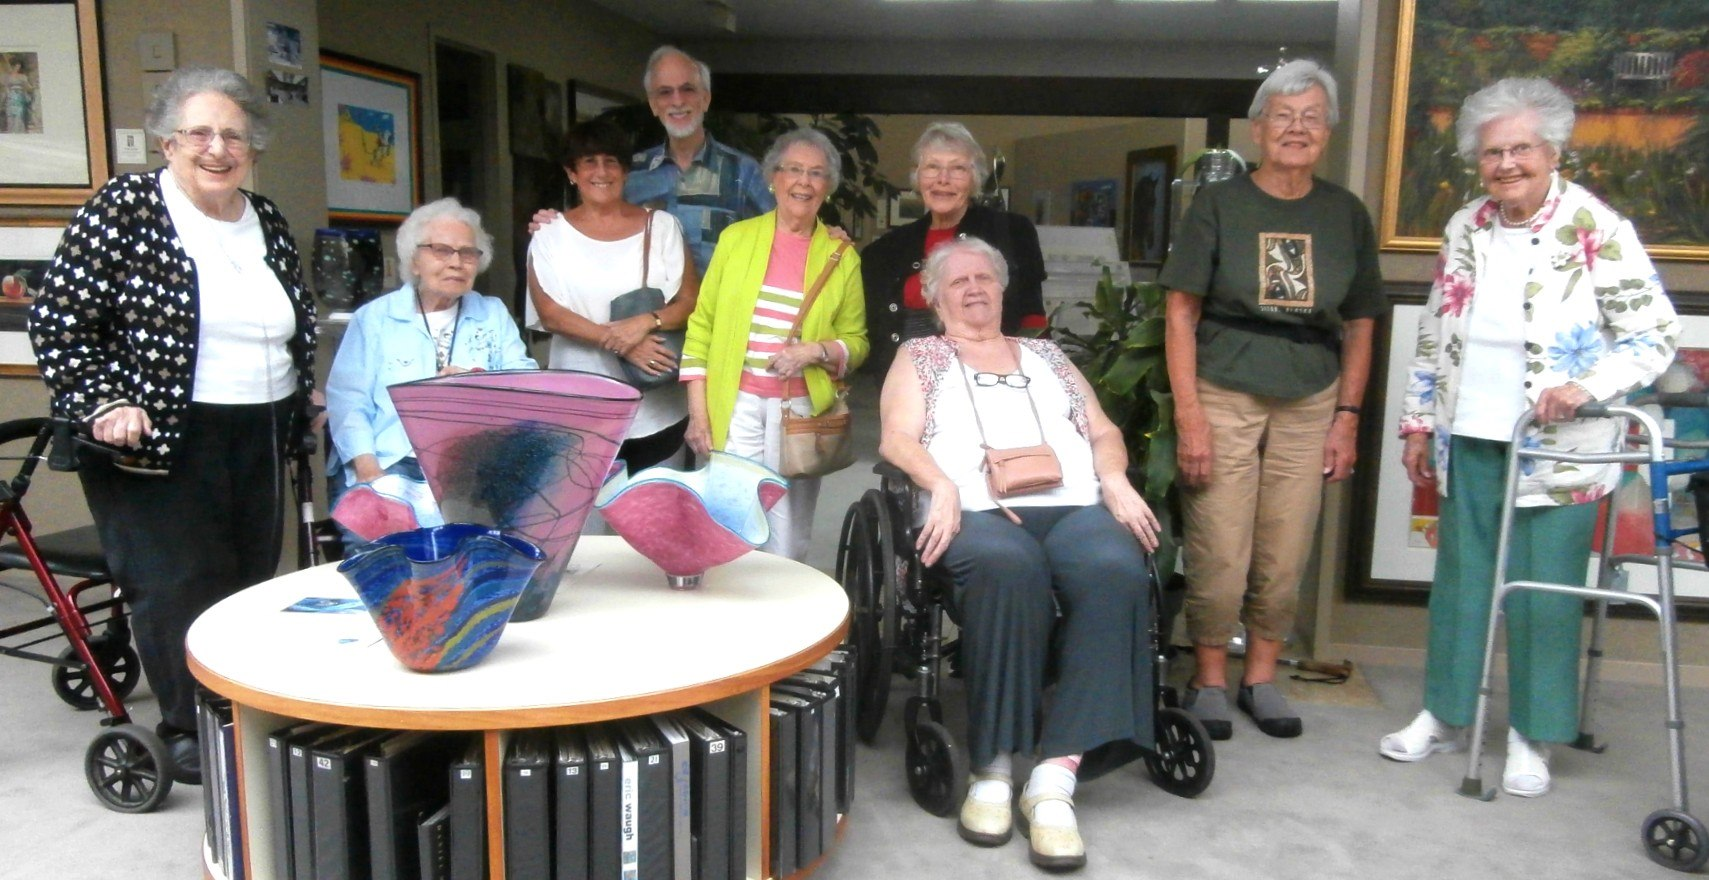 Burchaem Hills                       Retirement Center guests